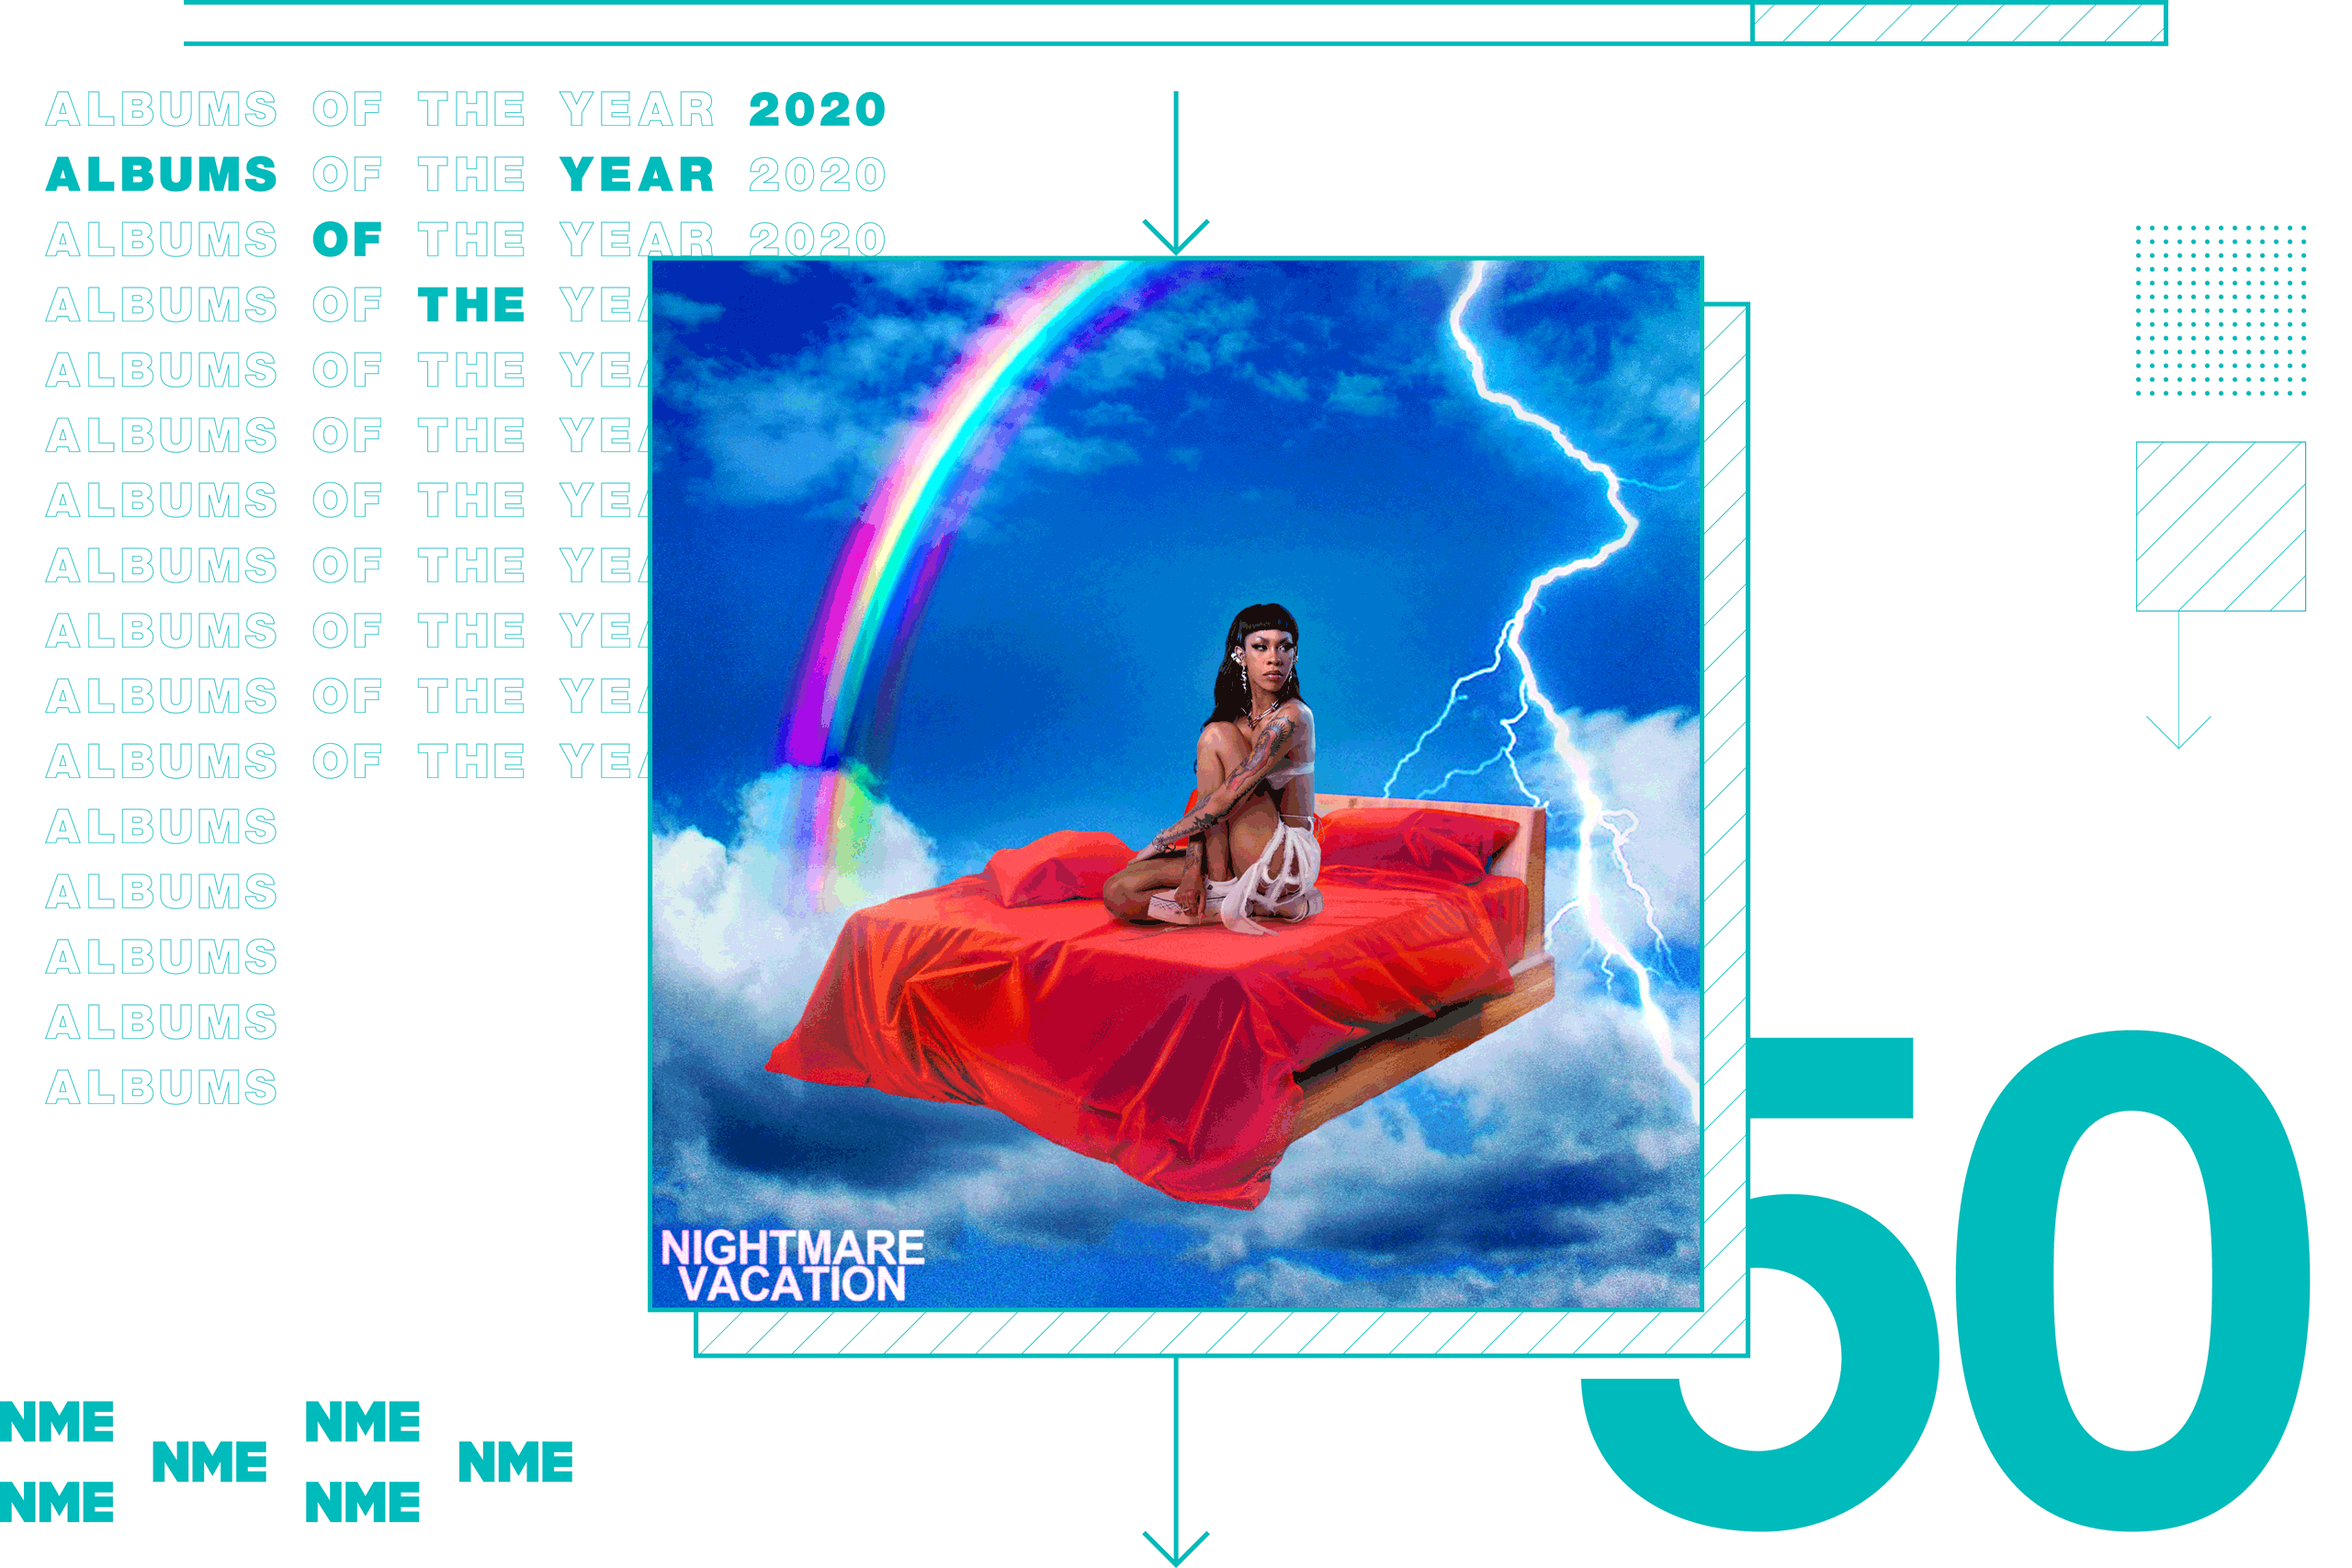 NME Album Of The Year 2020 Rico Nasty, 'Nightmare Vacation'